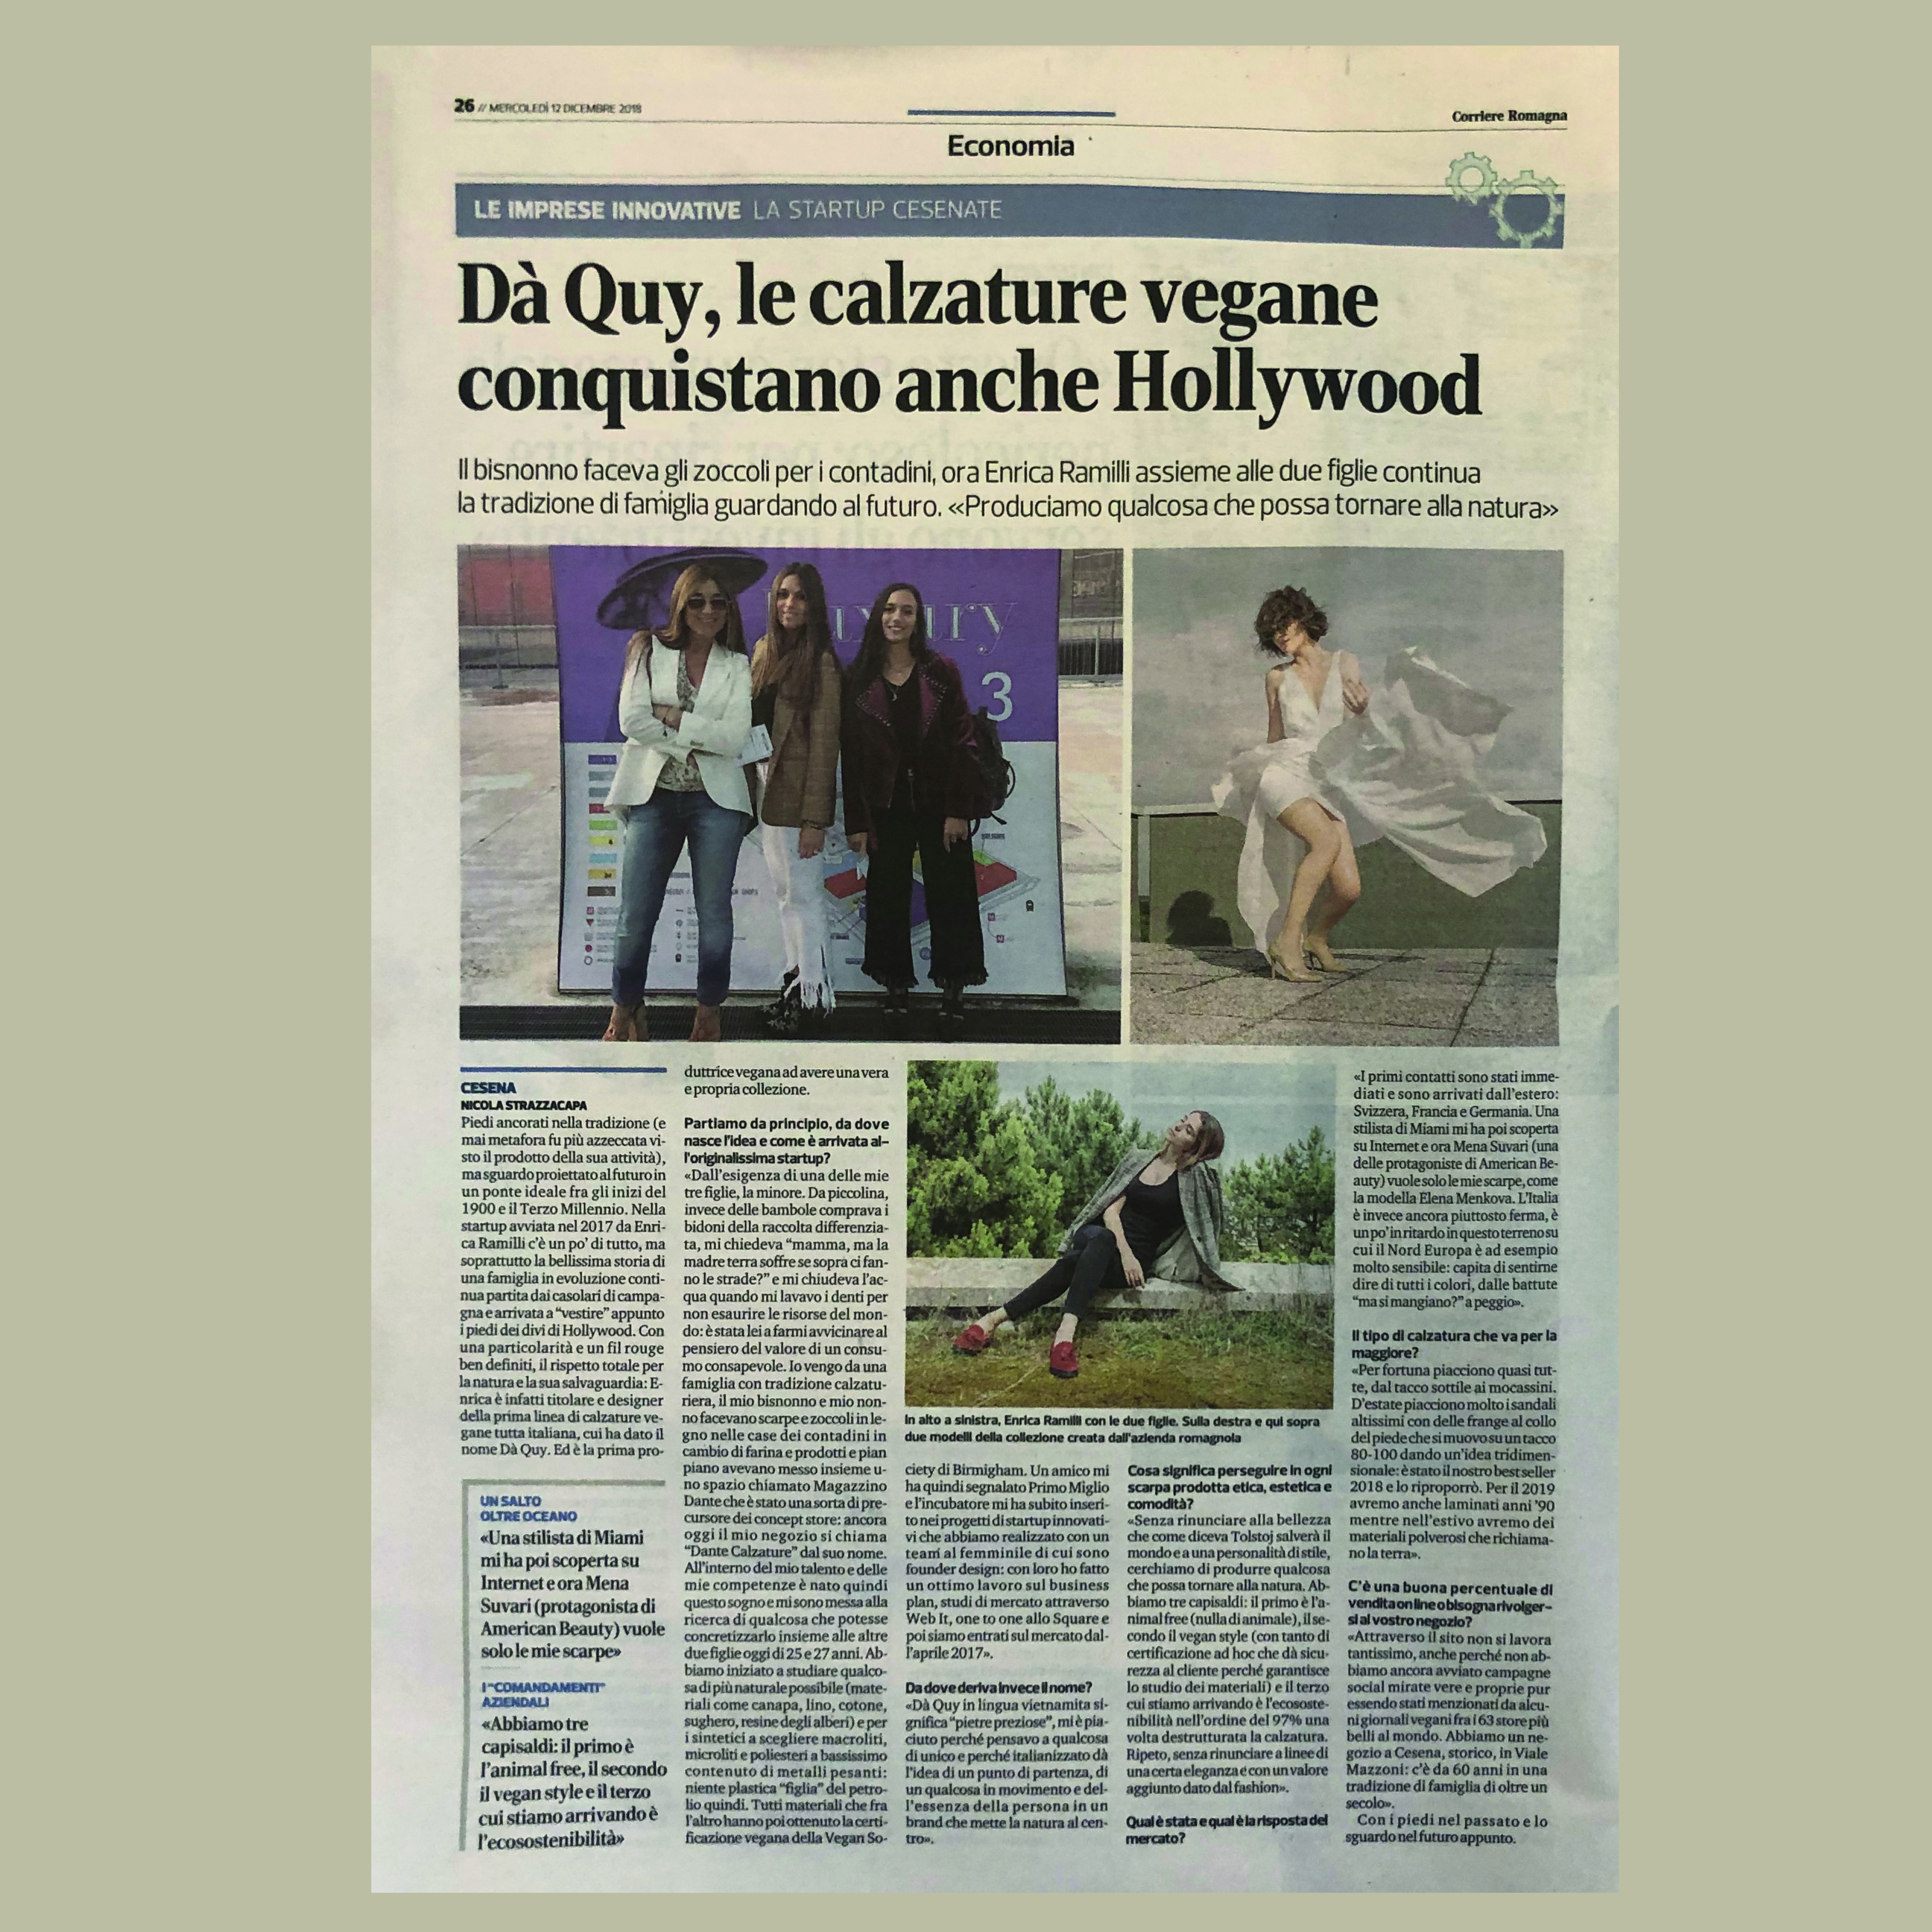 Da Quy is on the newspaper Corriere Romagna!